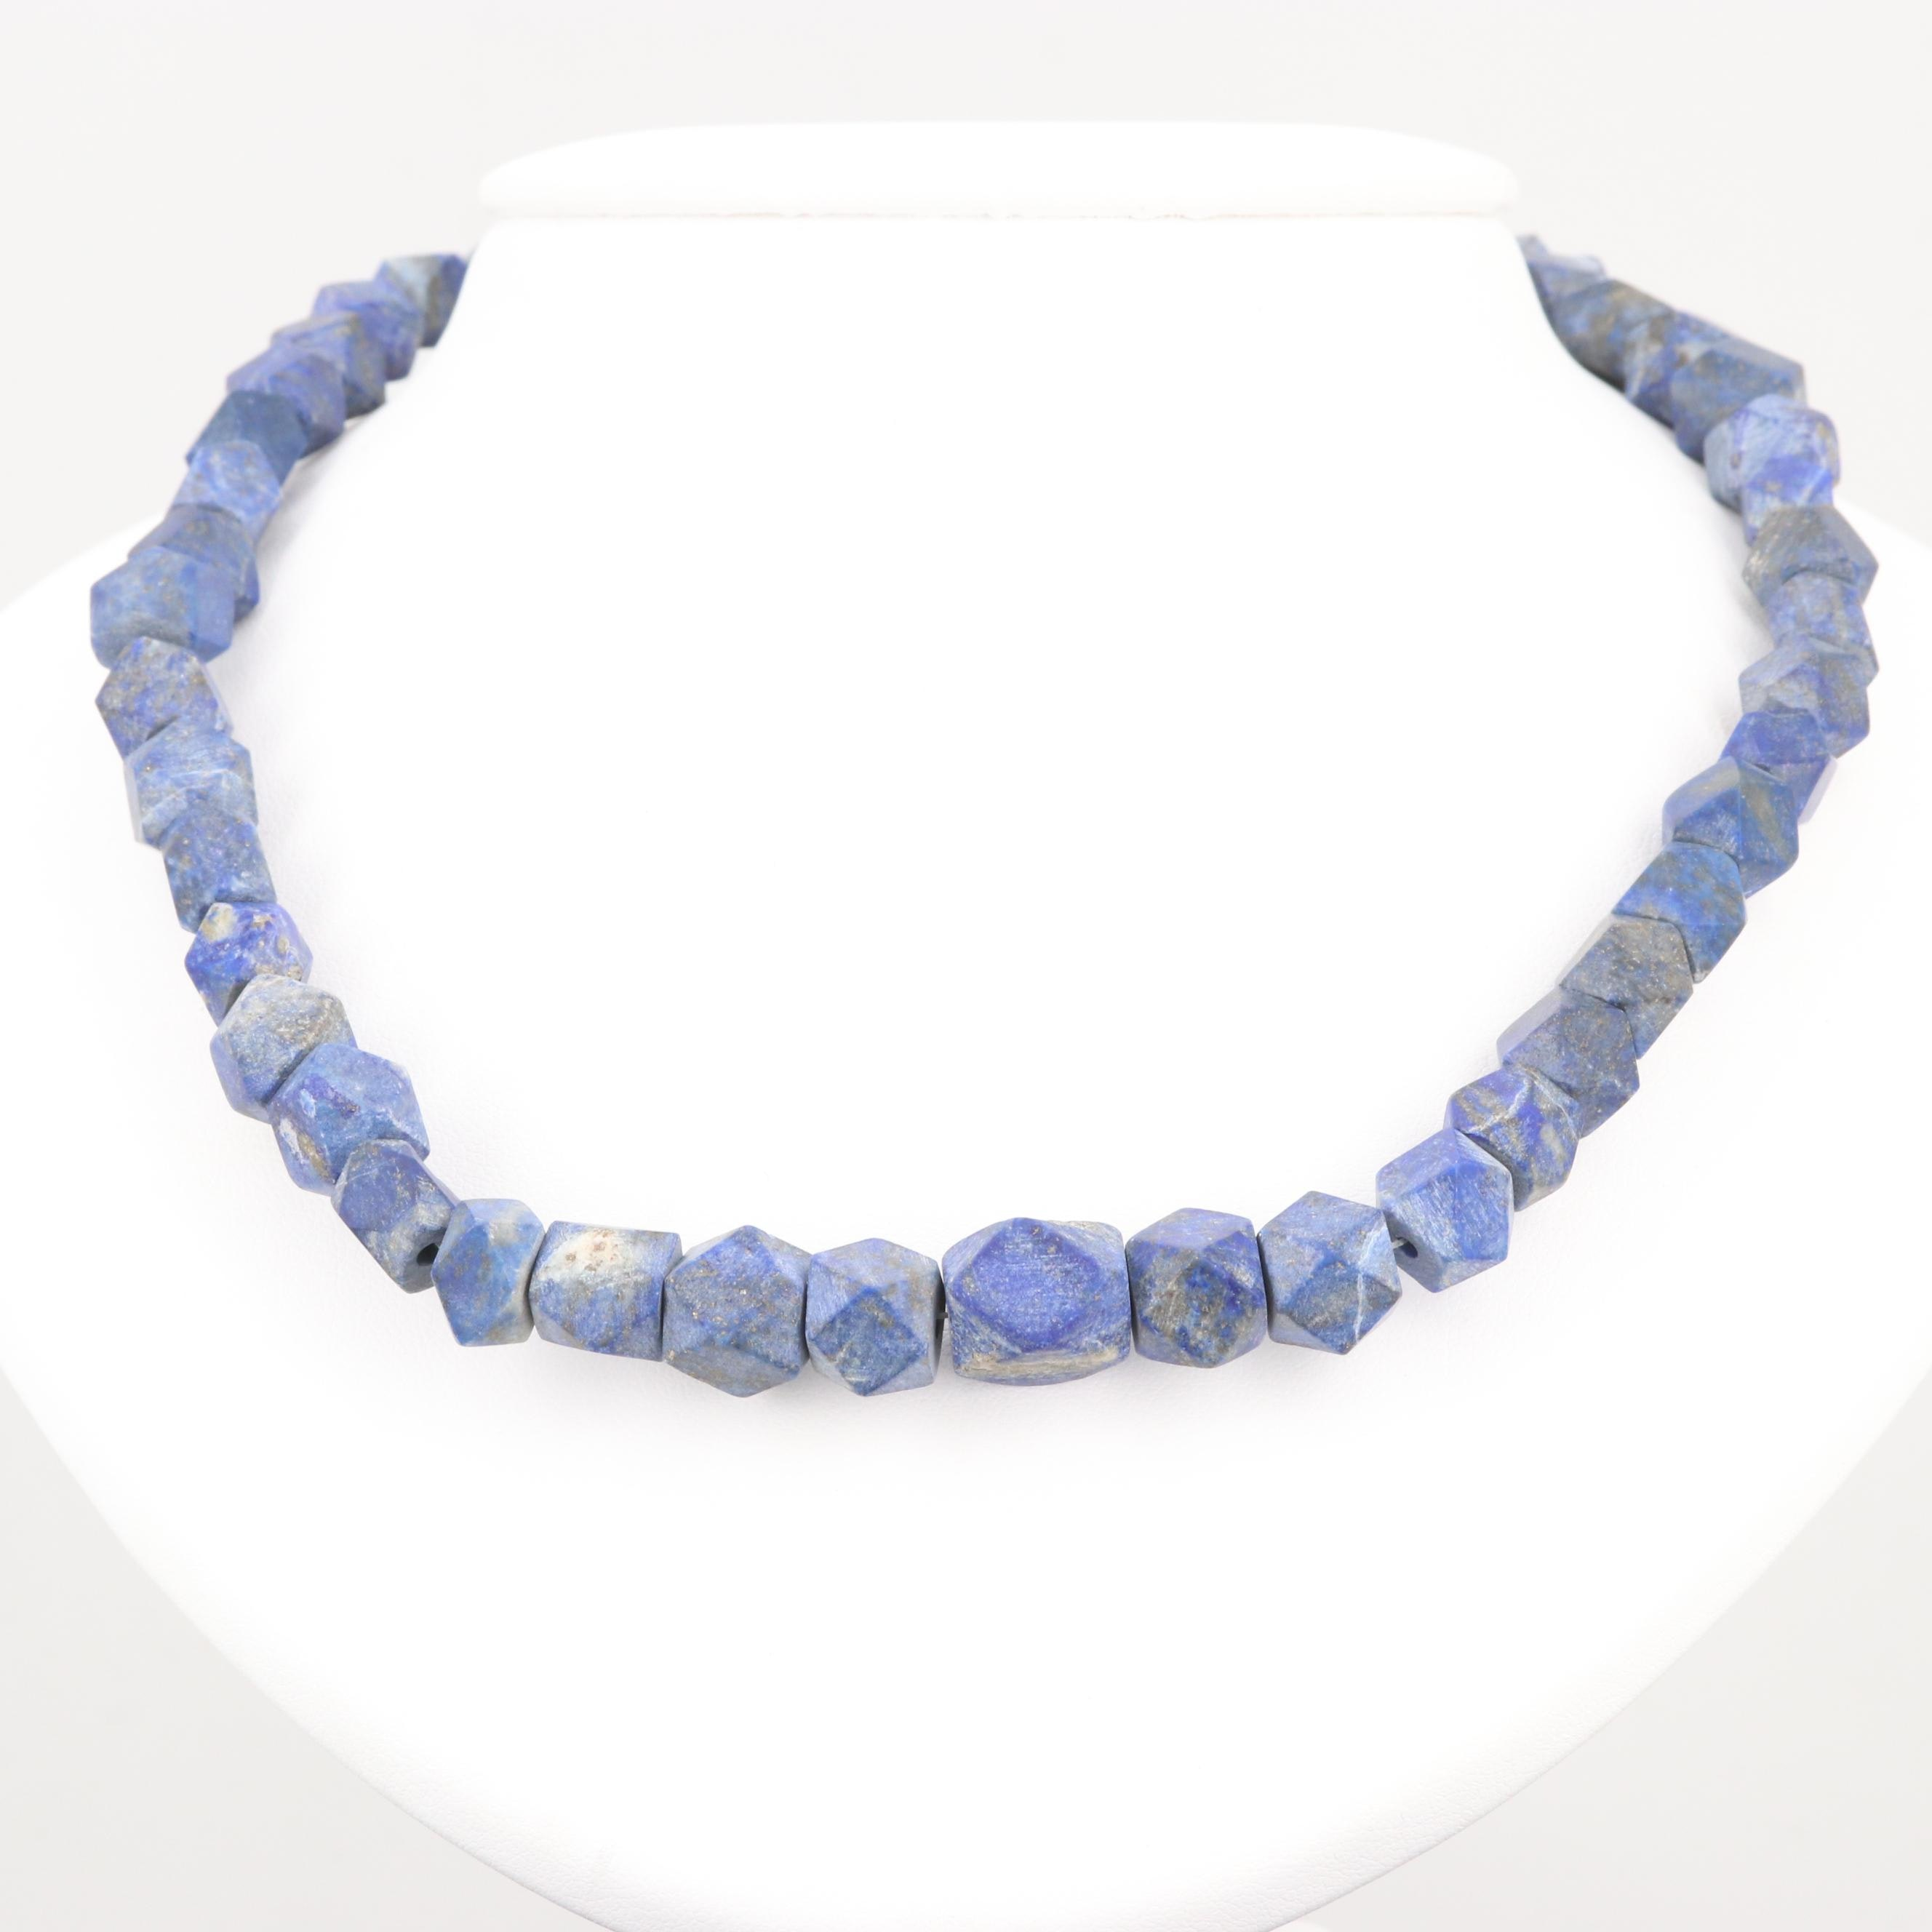 Lapis Lazuli Graduated Beaded Necklace with Gold Tone Clasp